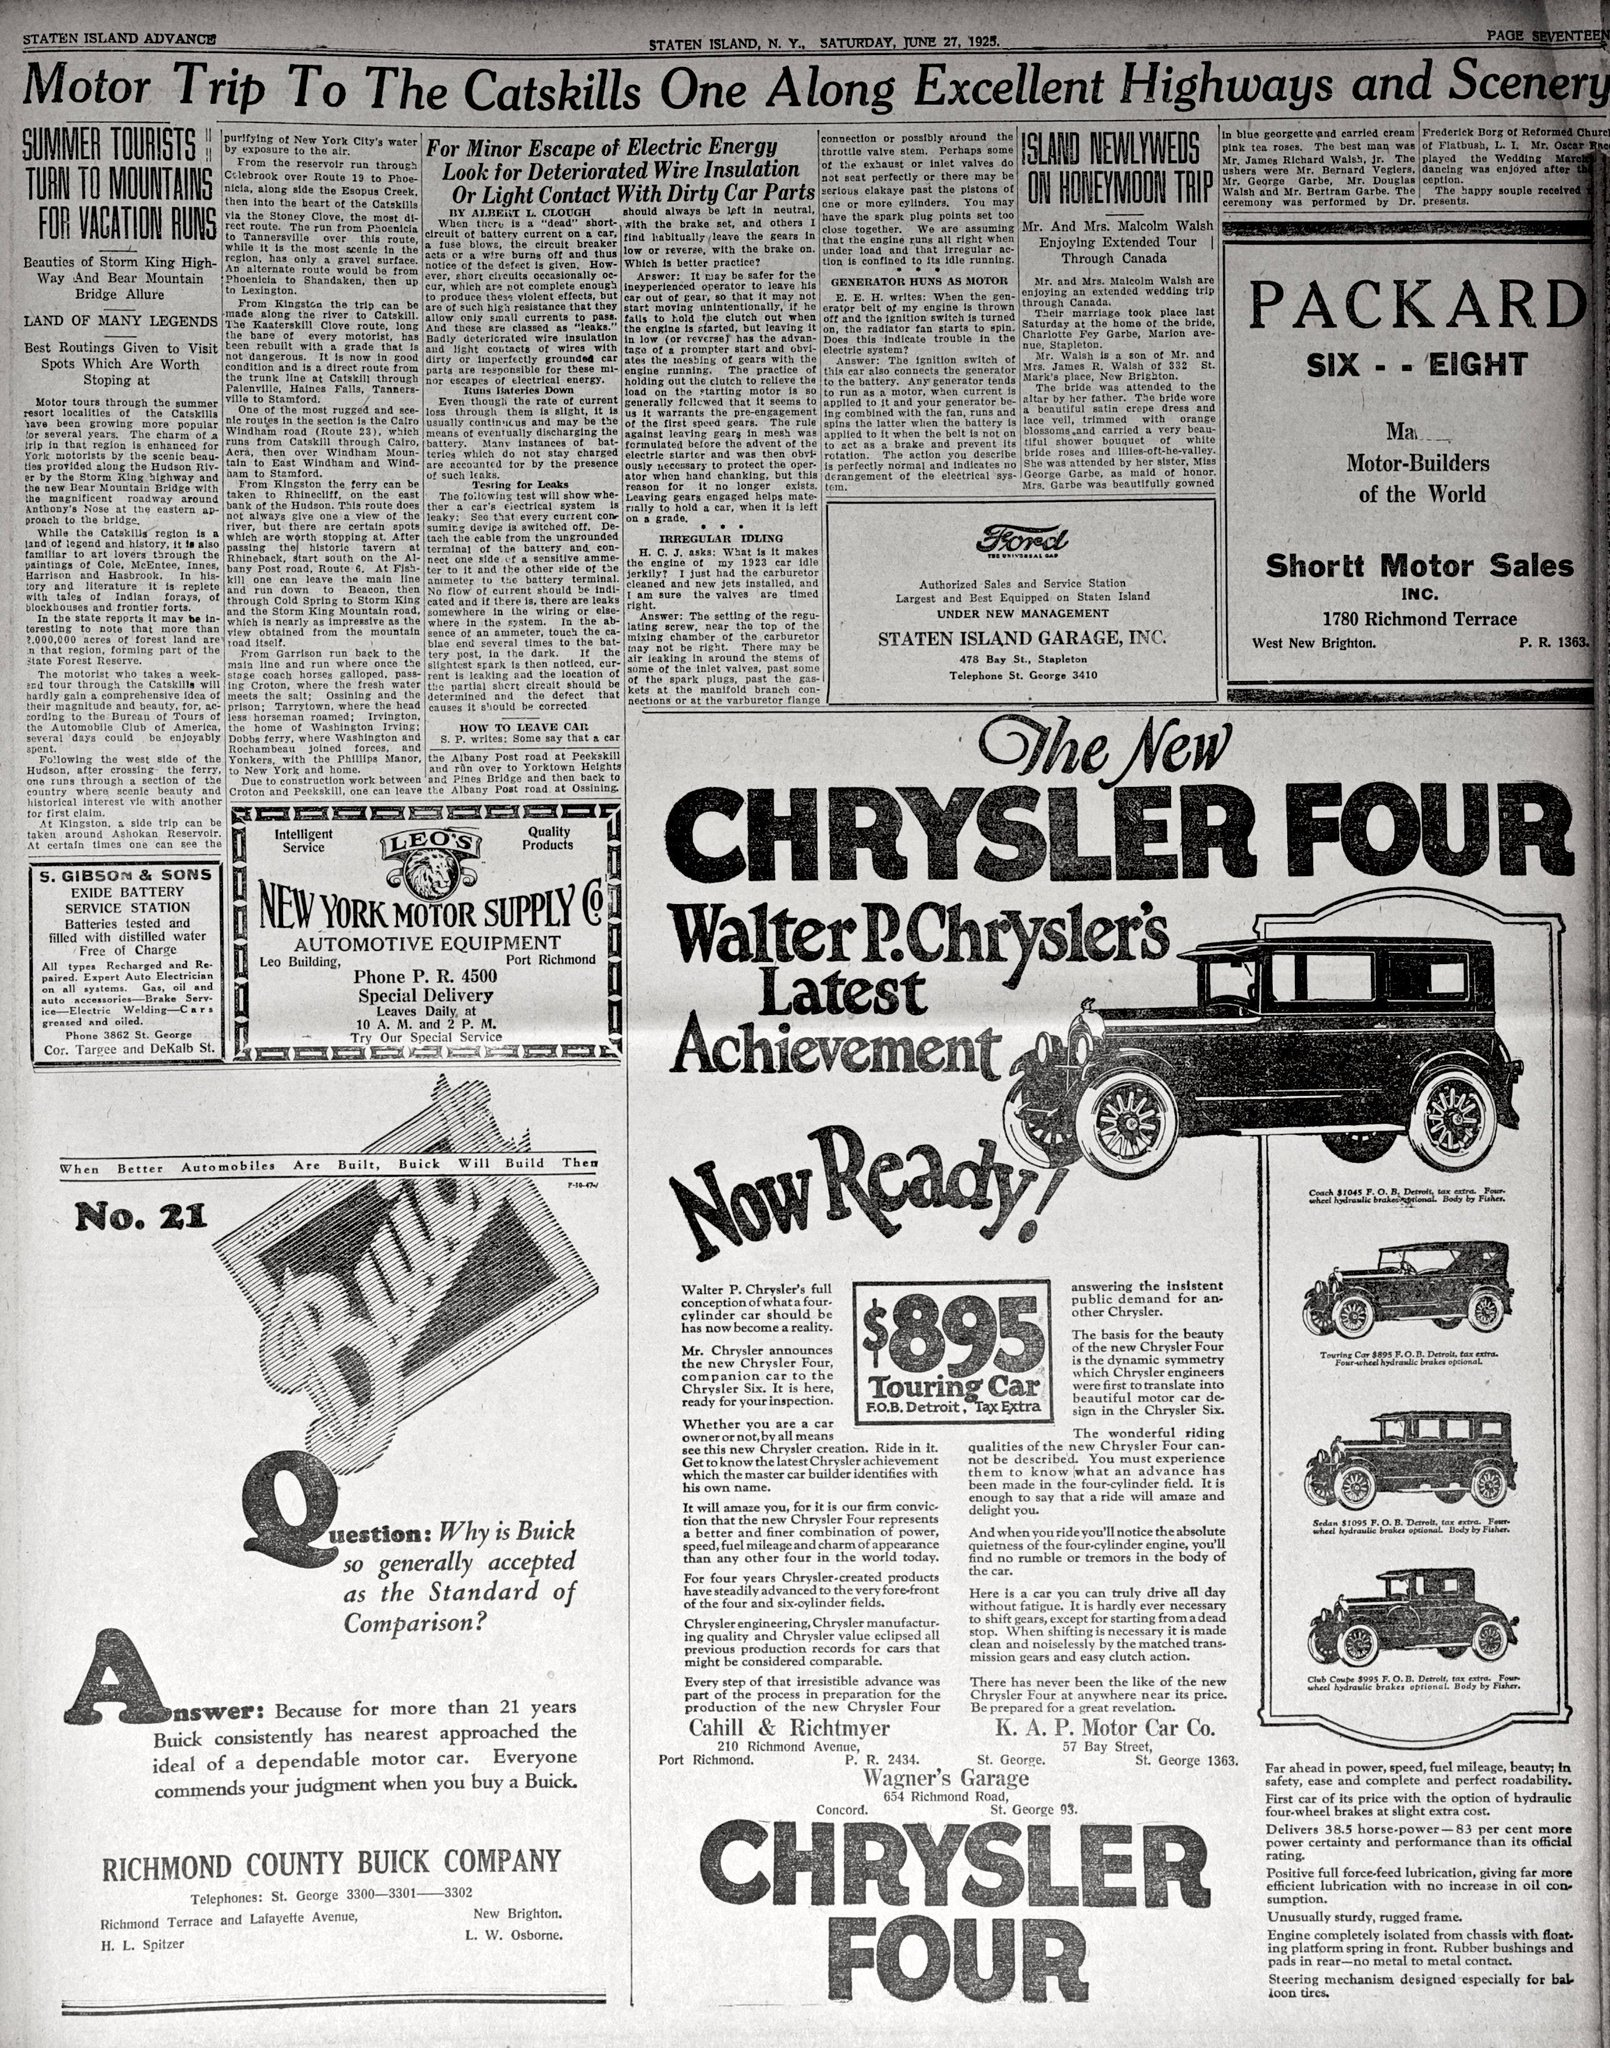 Advance historic page from June 27, 1925: The new Chrysler Four